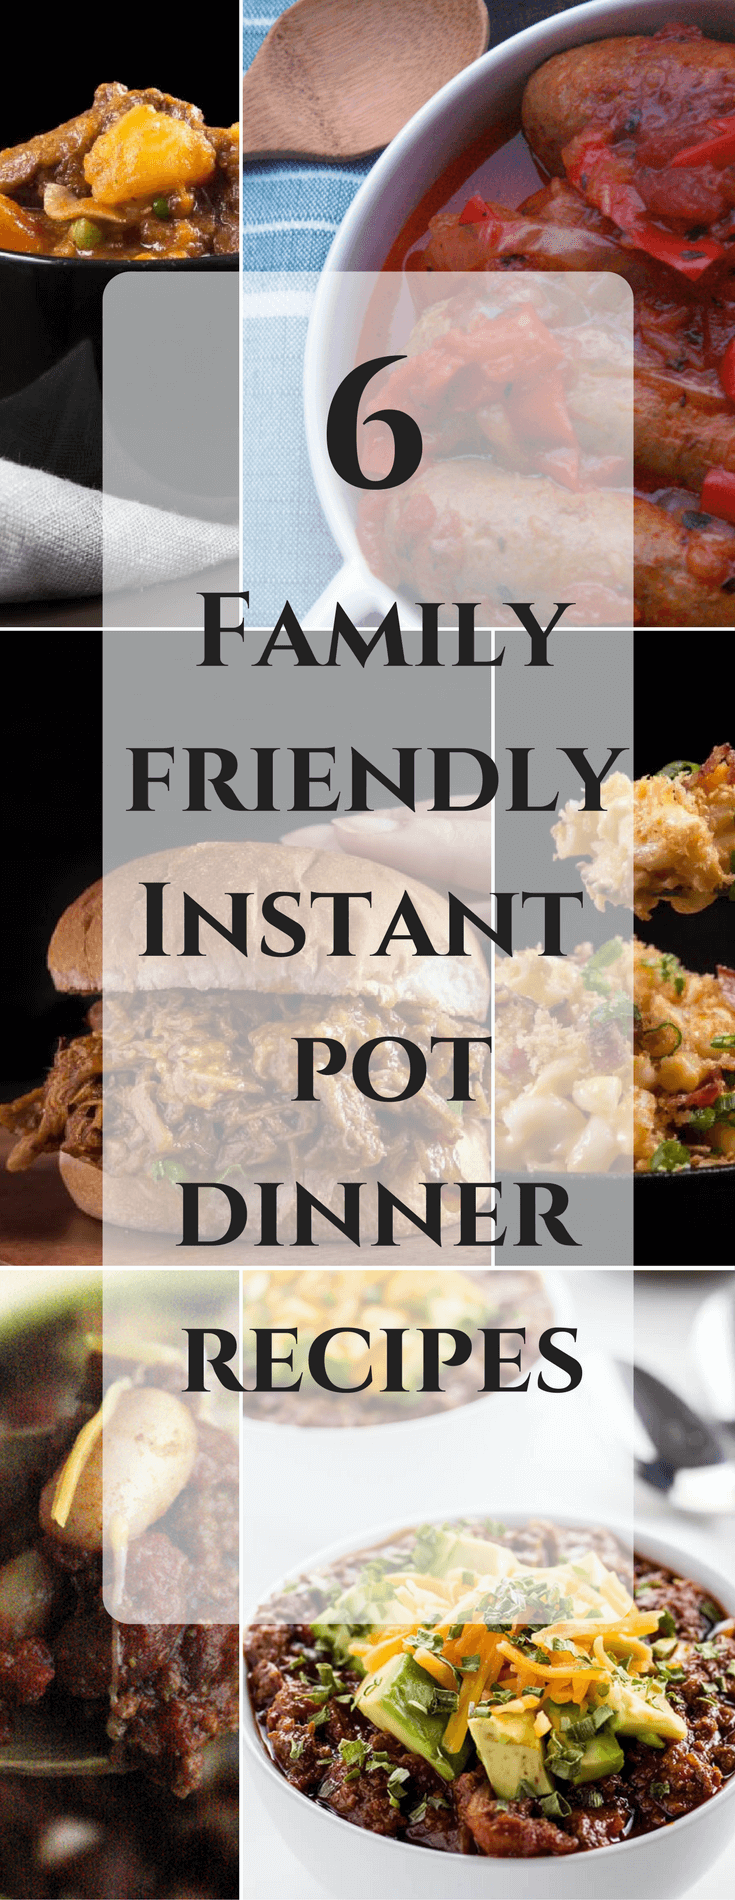 6 Family Friendly Instant Pot Dinner Recipes